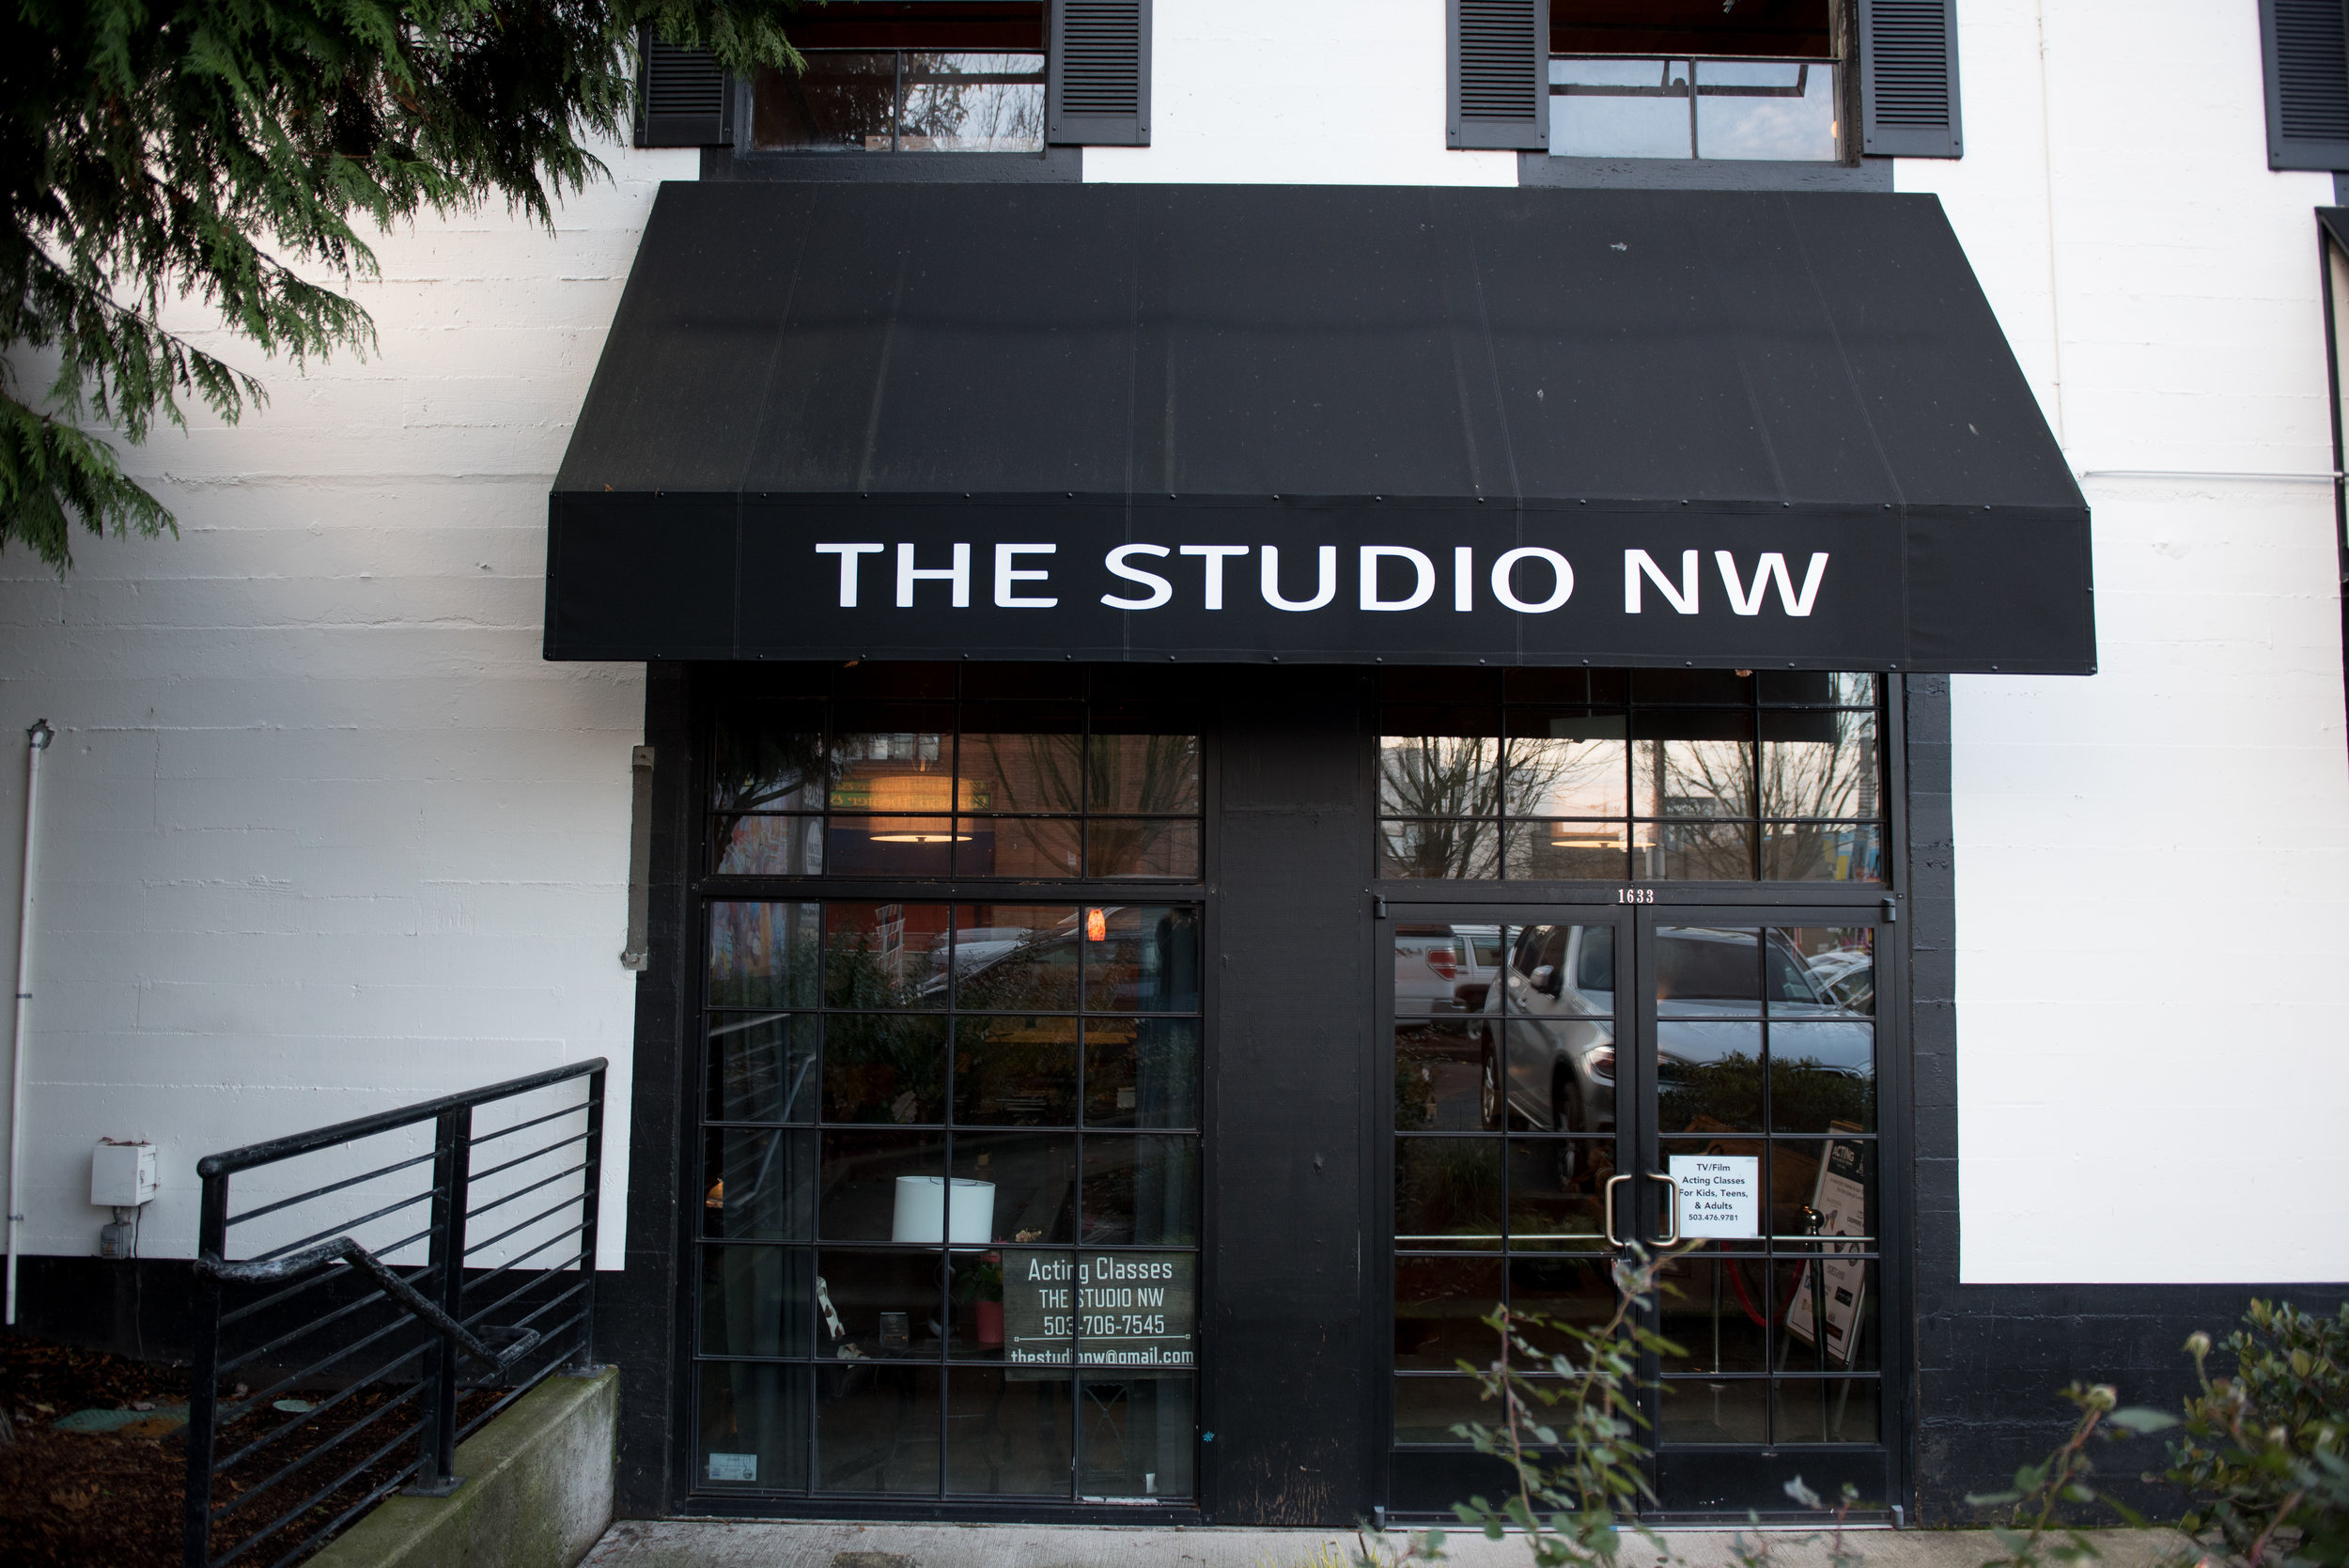 Studio Tour - Our beautiful 2,300 sq. ft. studio is perfect for industry events, auditions, shoots, training and more!